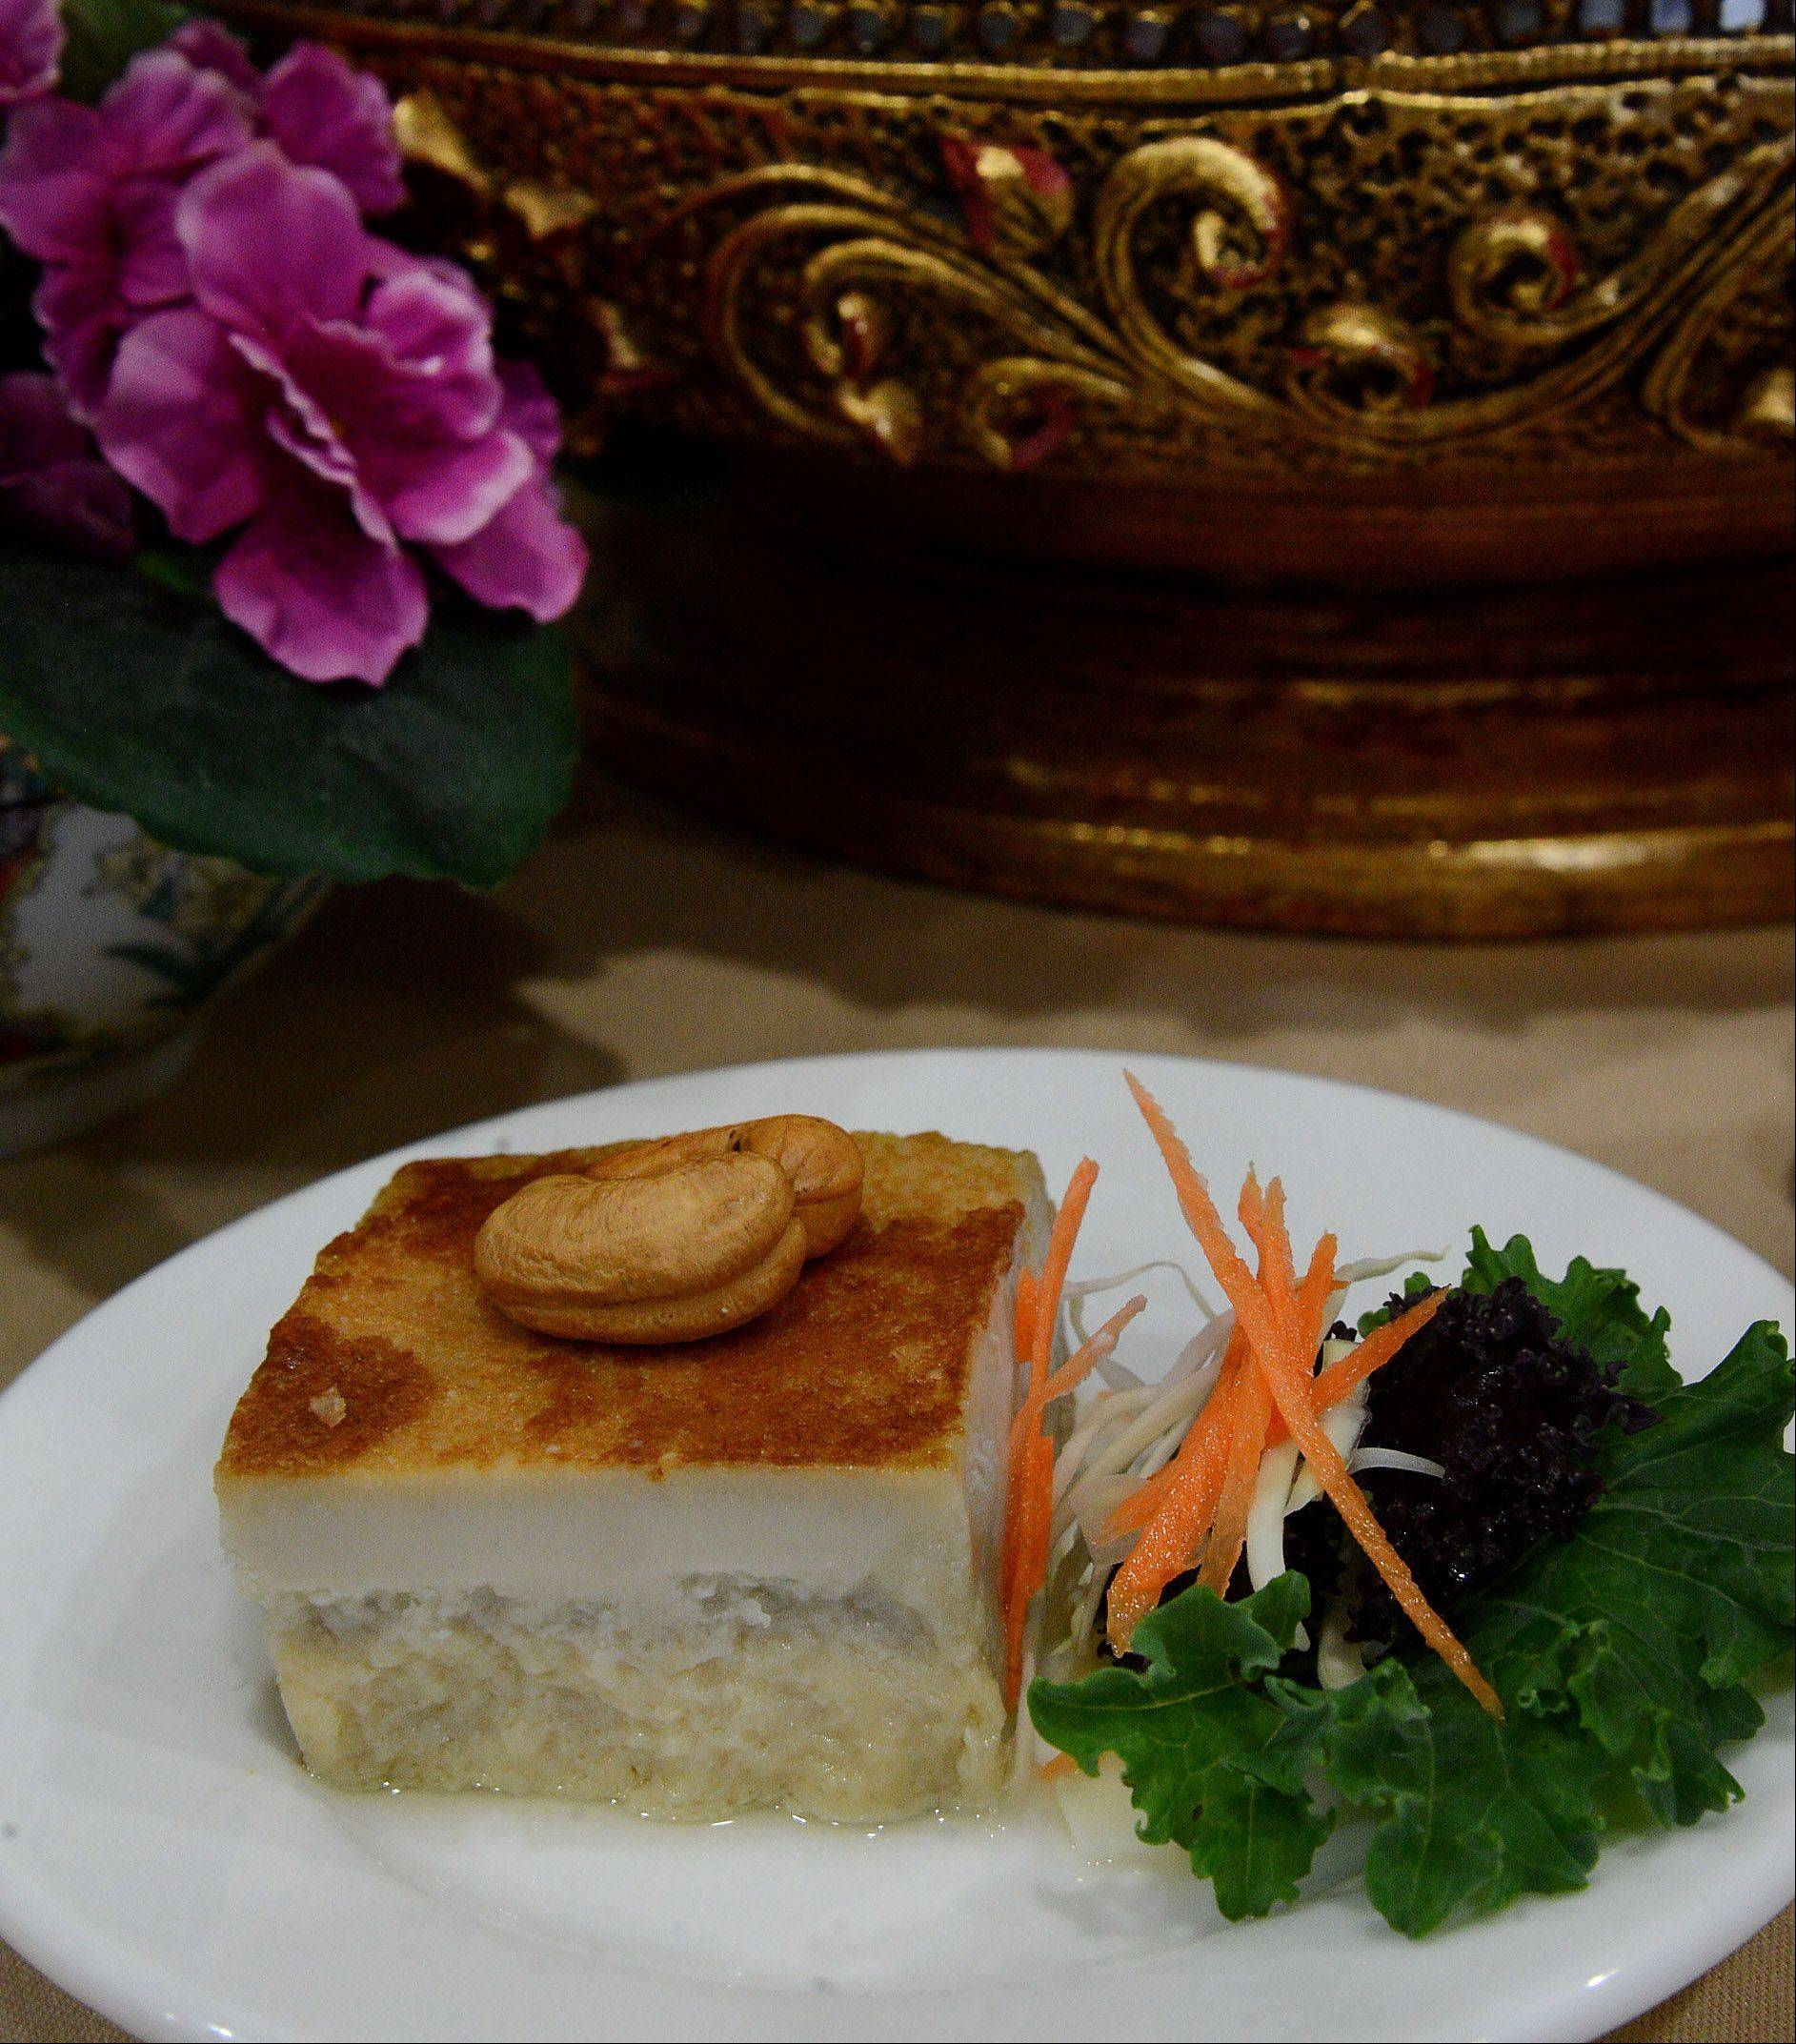 Thai custard is made with taro root sweetened and mixed with coconut milk and egg.